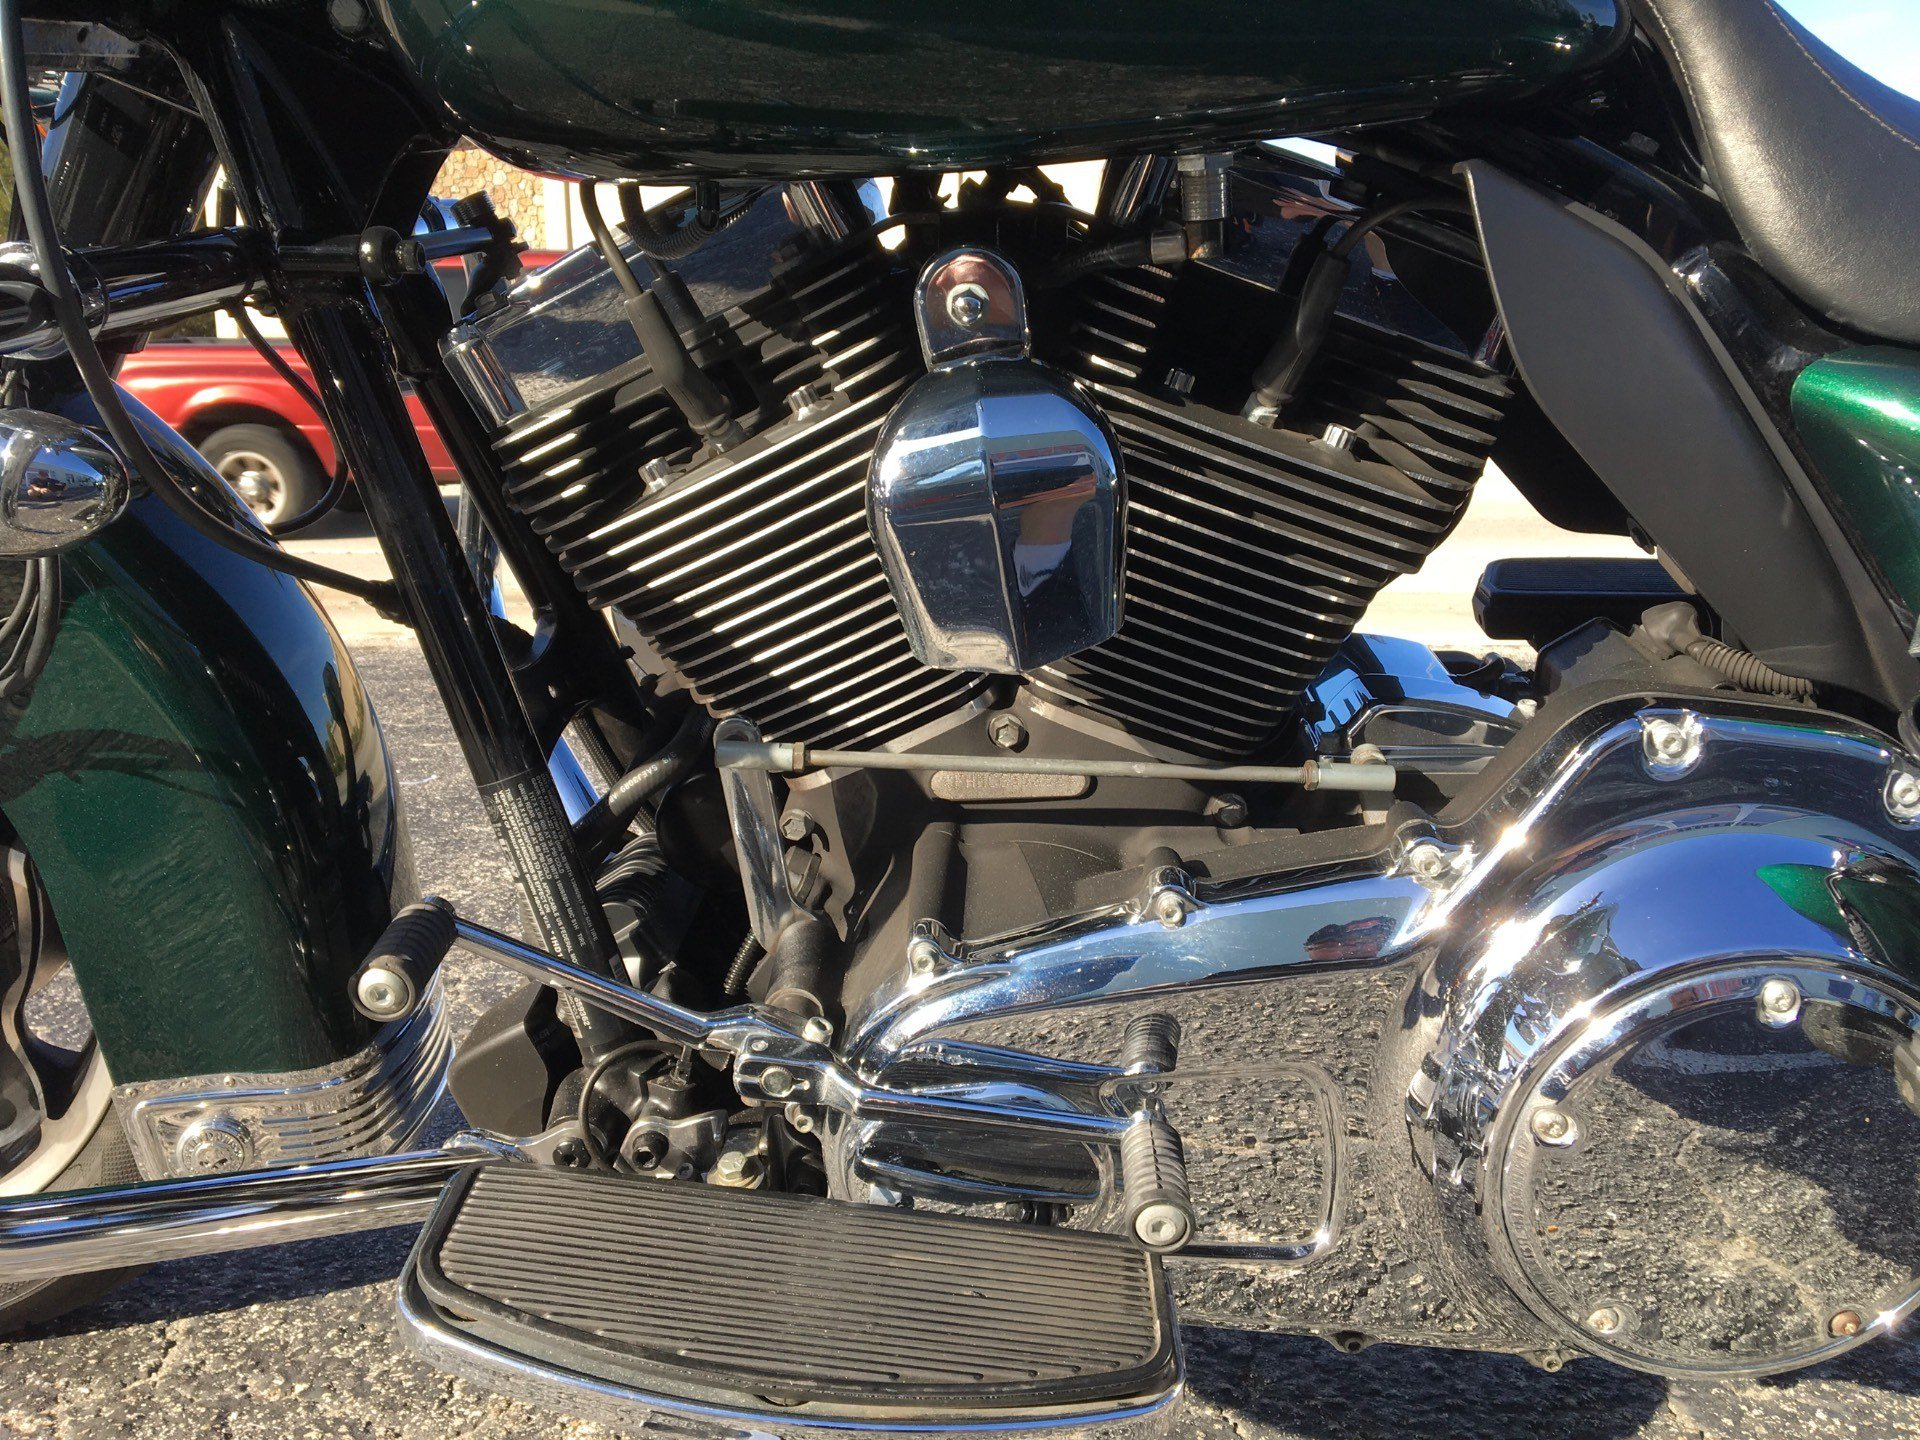 2012 Harley-Davidson Road King in Cocoa, Florida - Photo 16